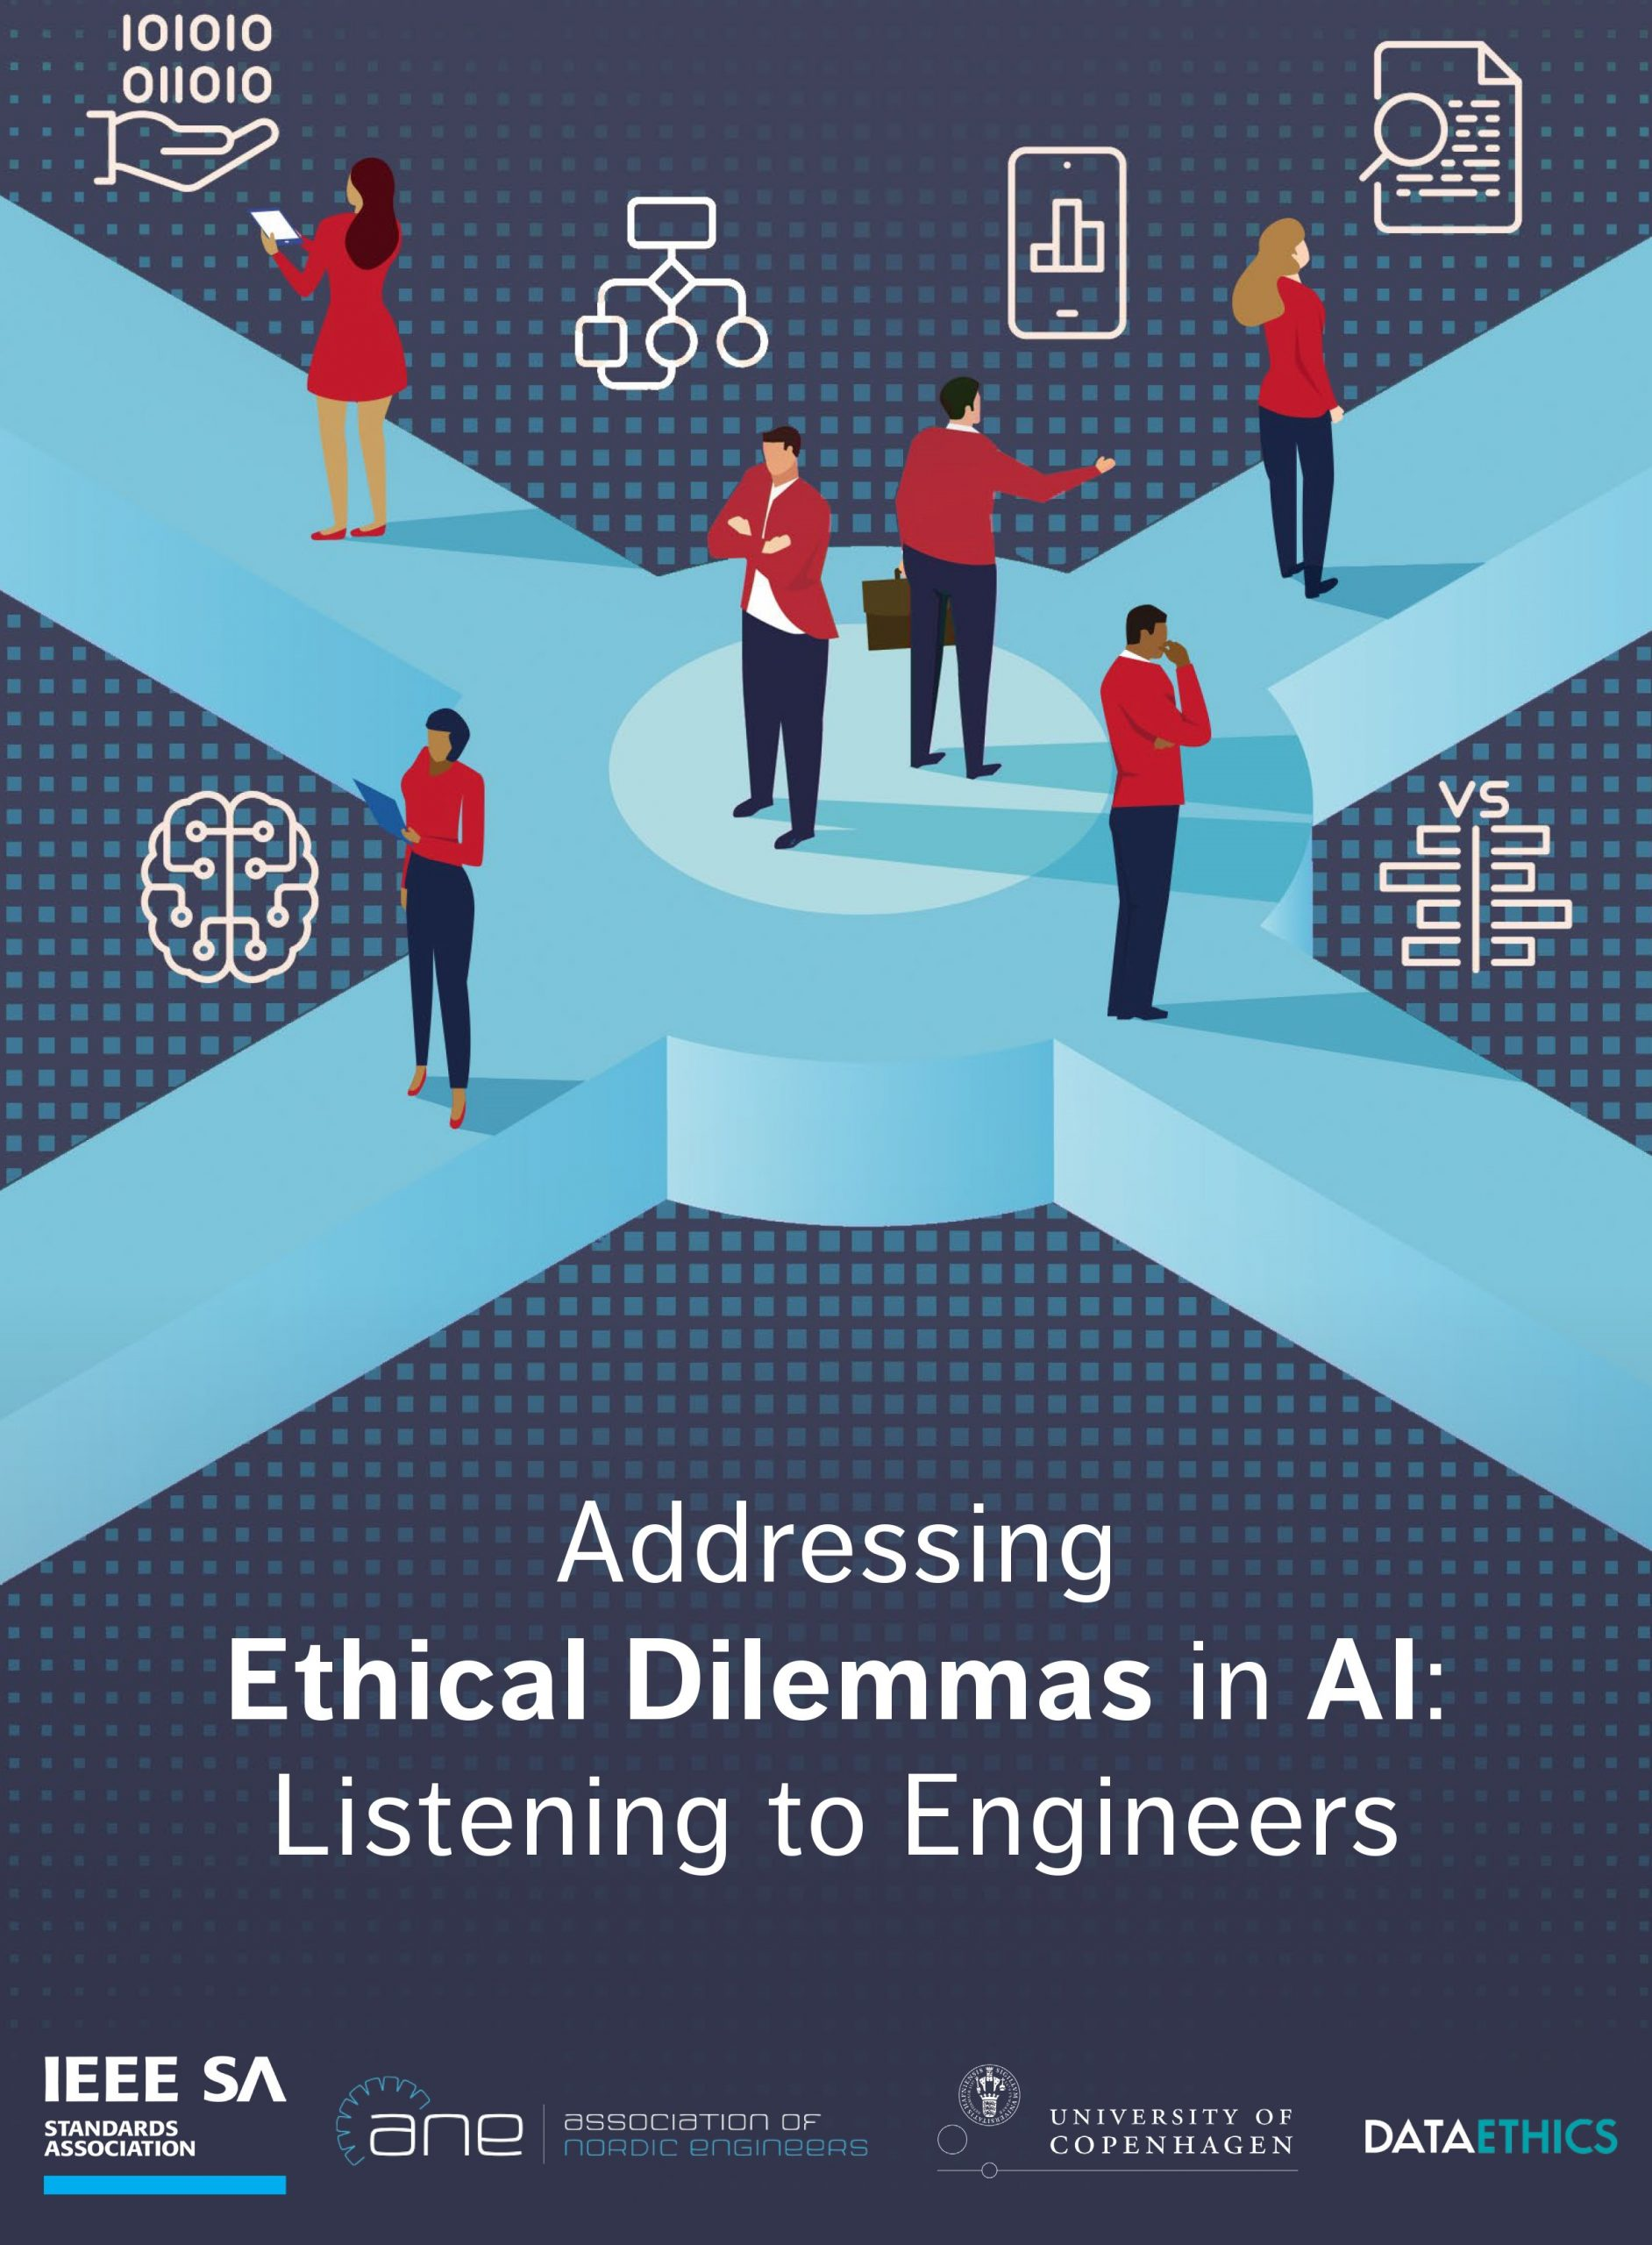 Listen to the Engineers – the algorithm does